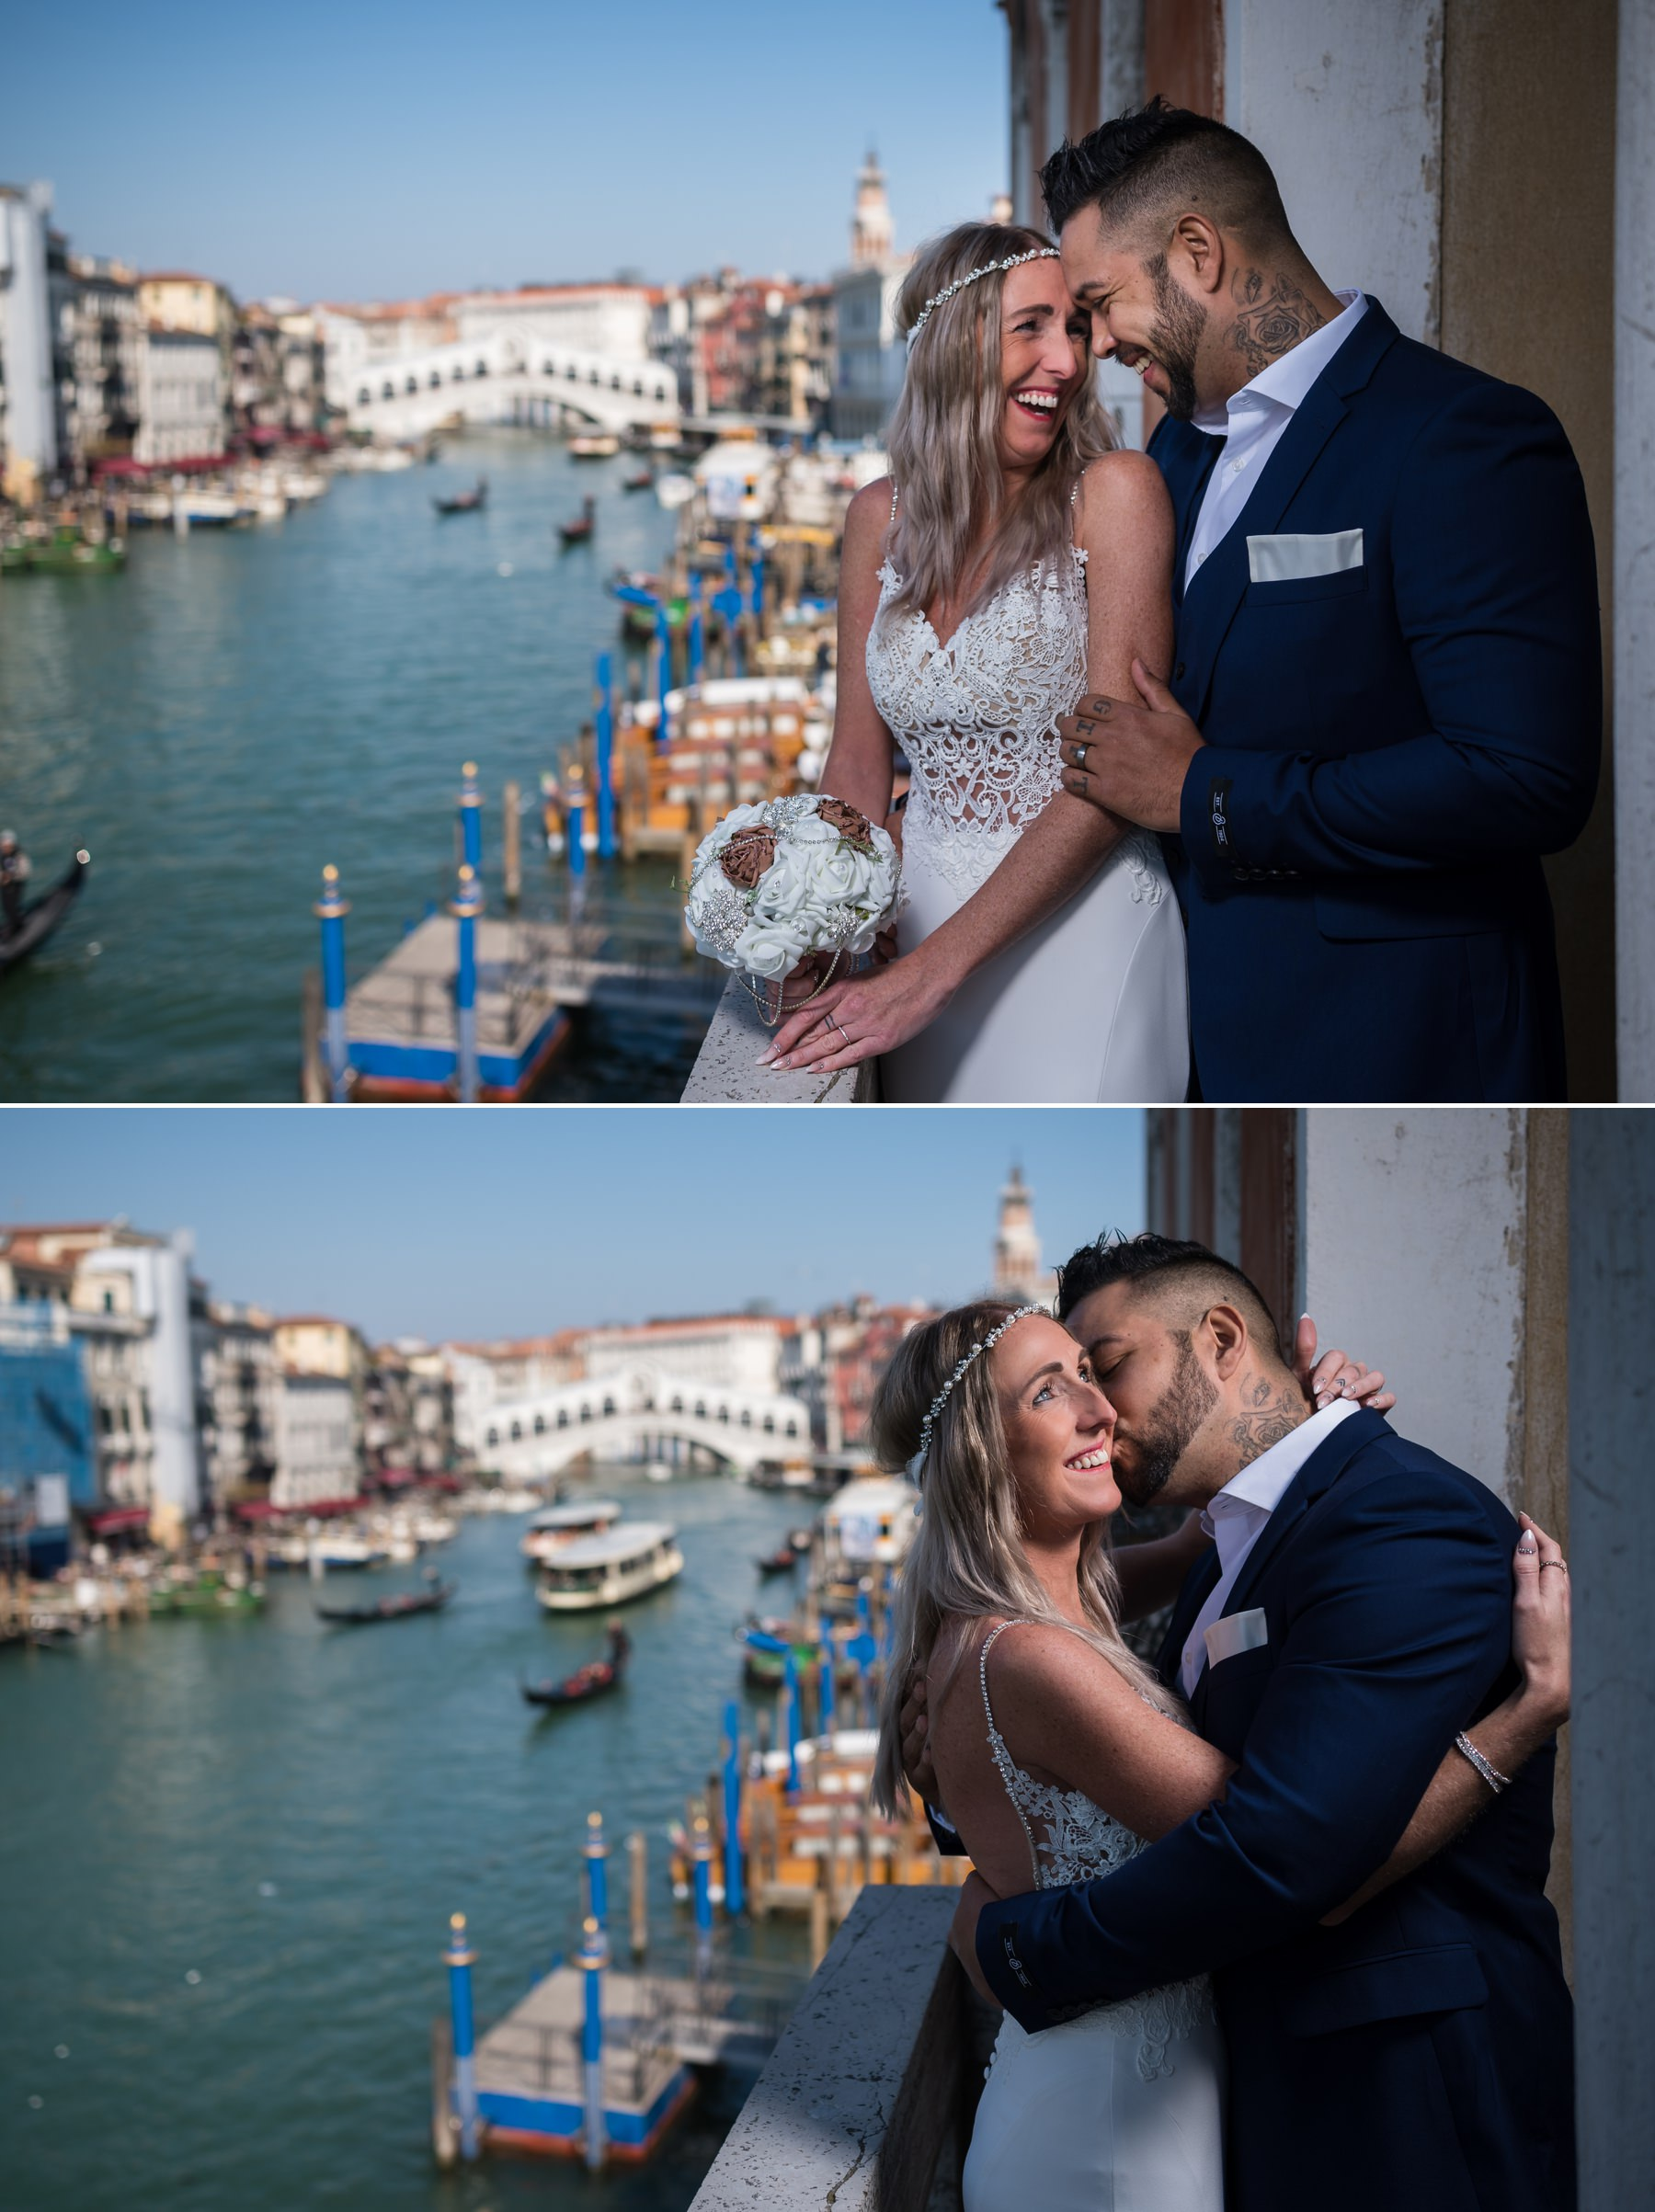 Palazzo Cavalli Venice bride and groom together on balcony rialto bridge in background